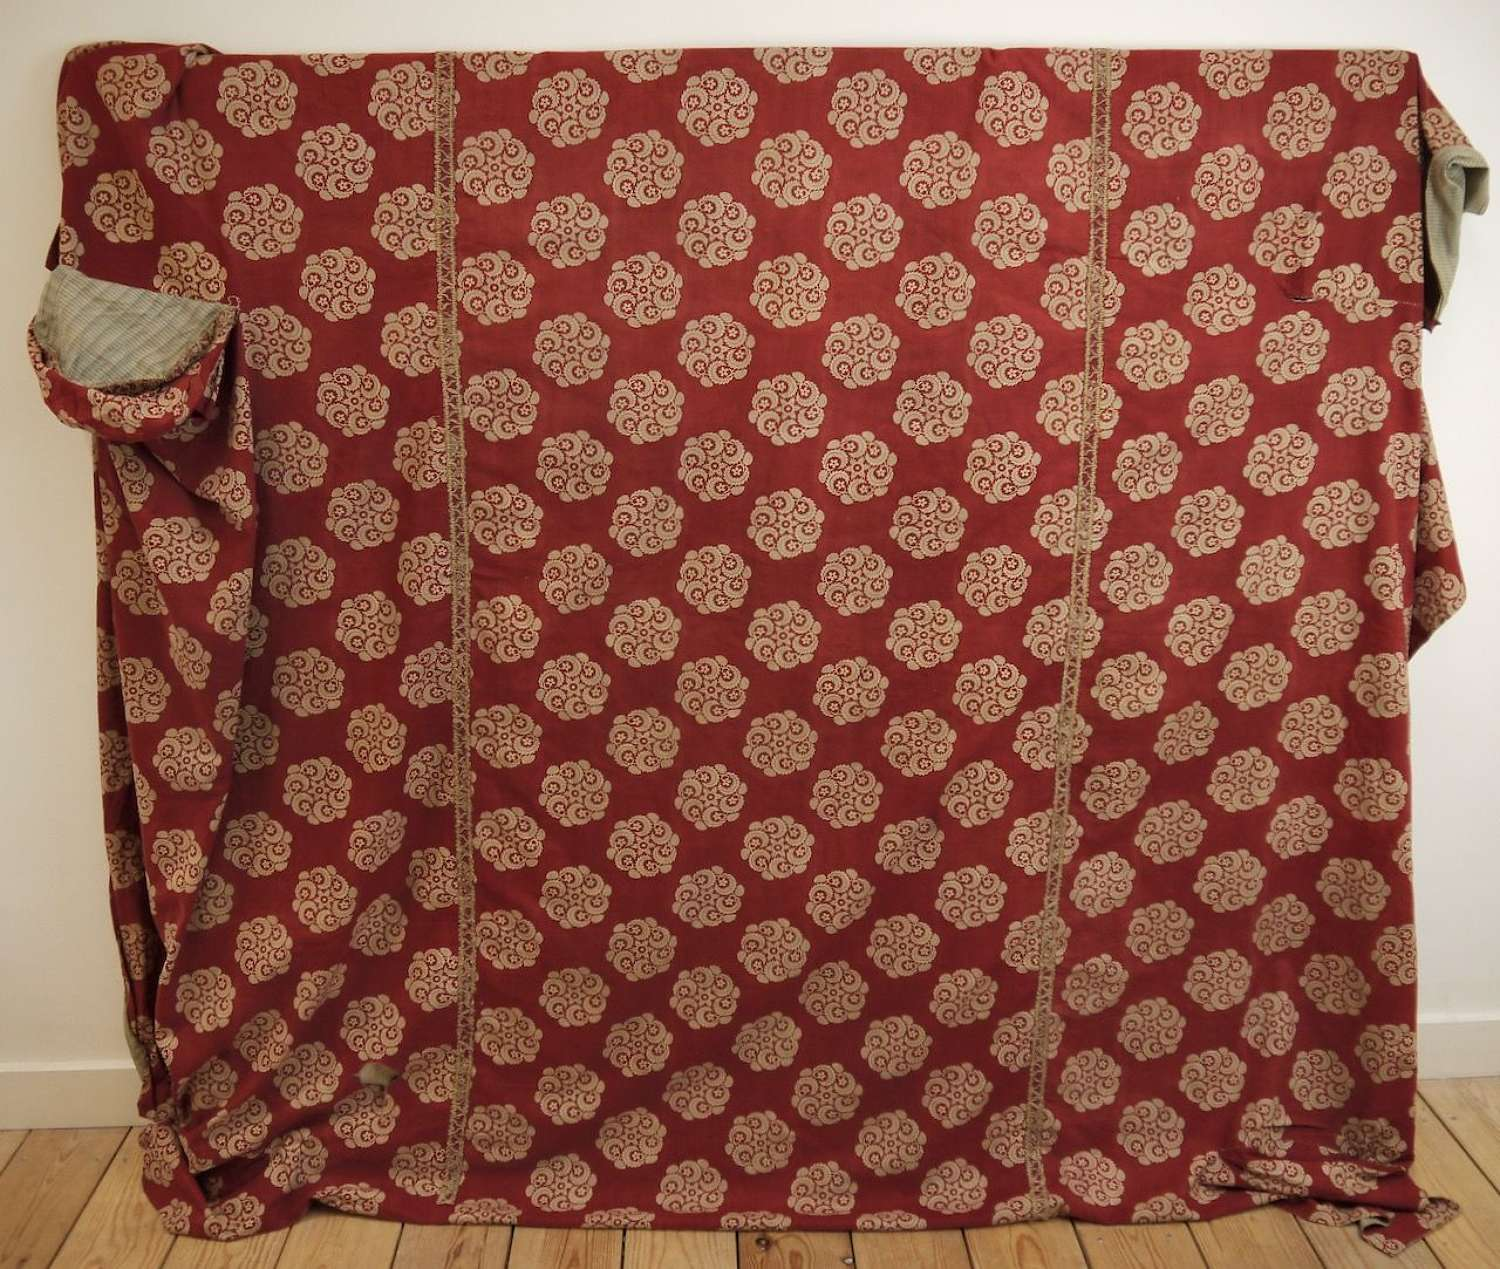 French Empire Block Printed Cotton Cover 19th Century